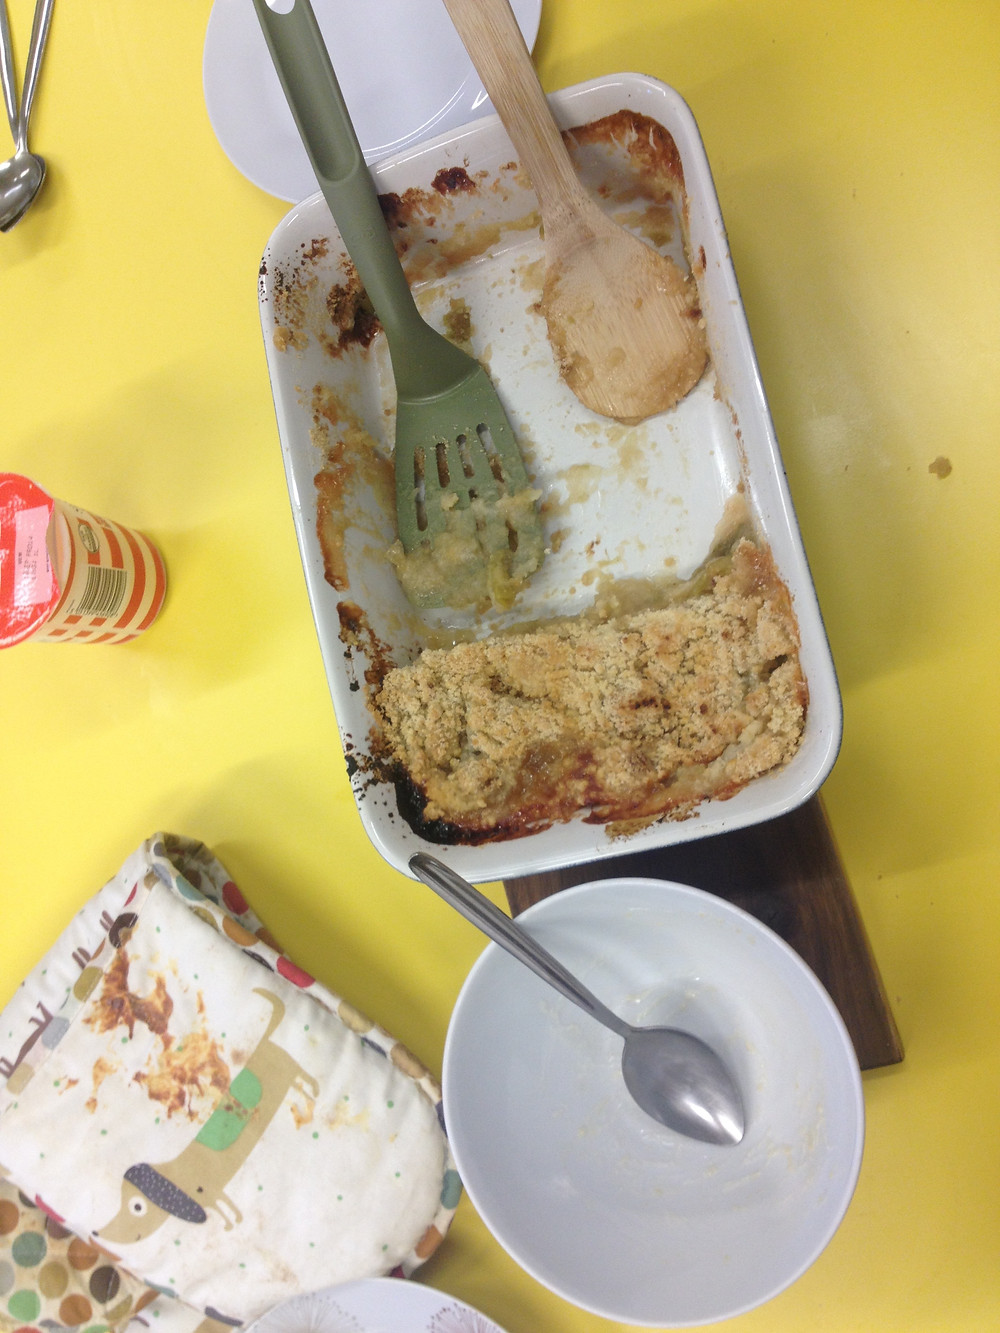 Apple crumble after